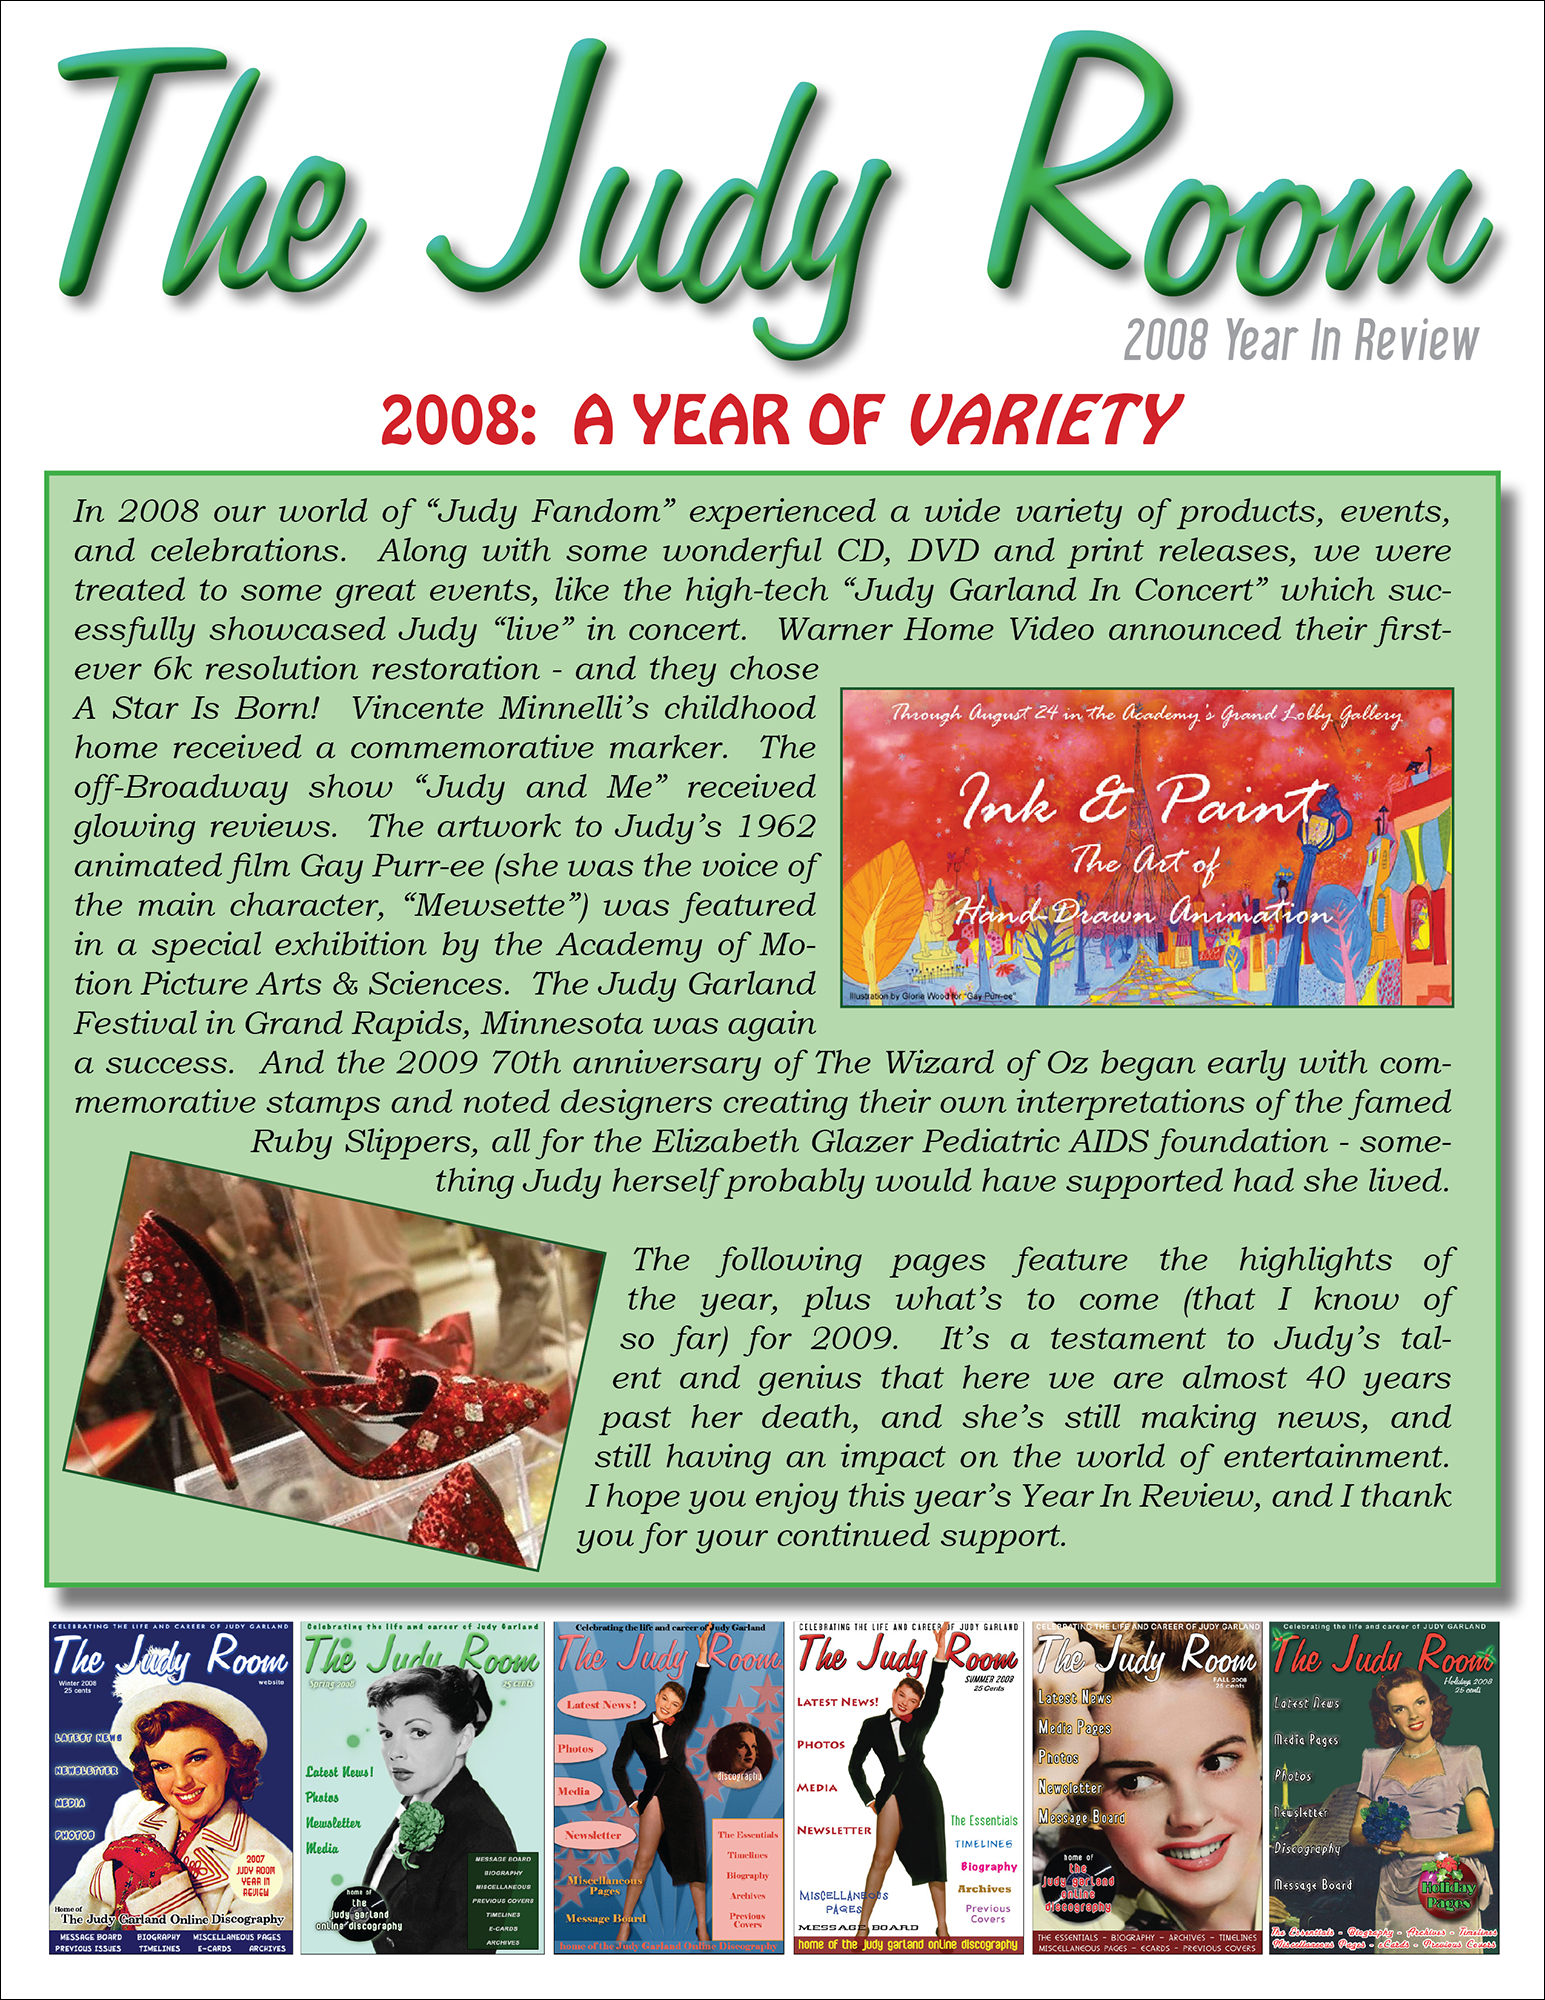 The Judy Room's 2008 Year in Review